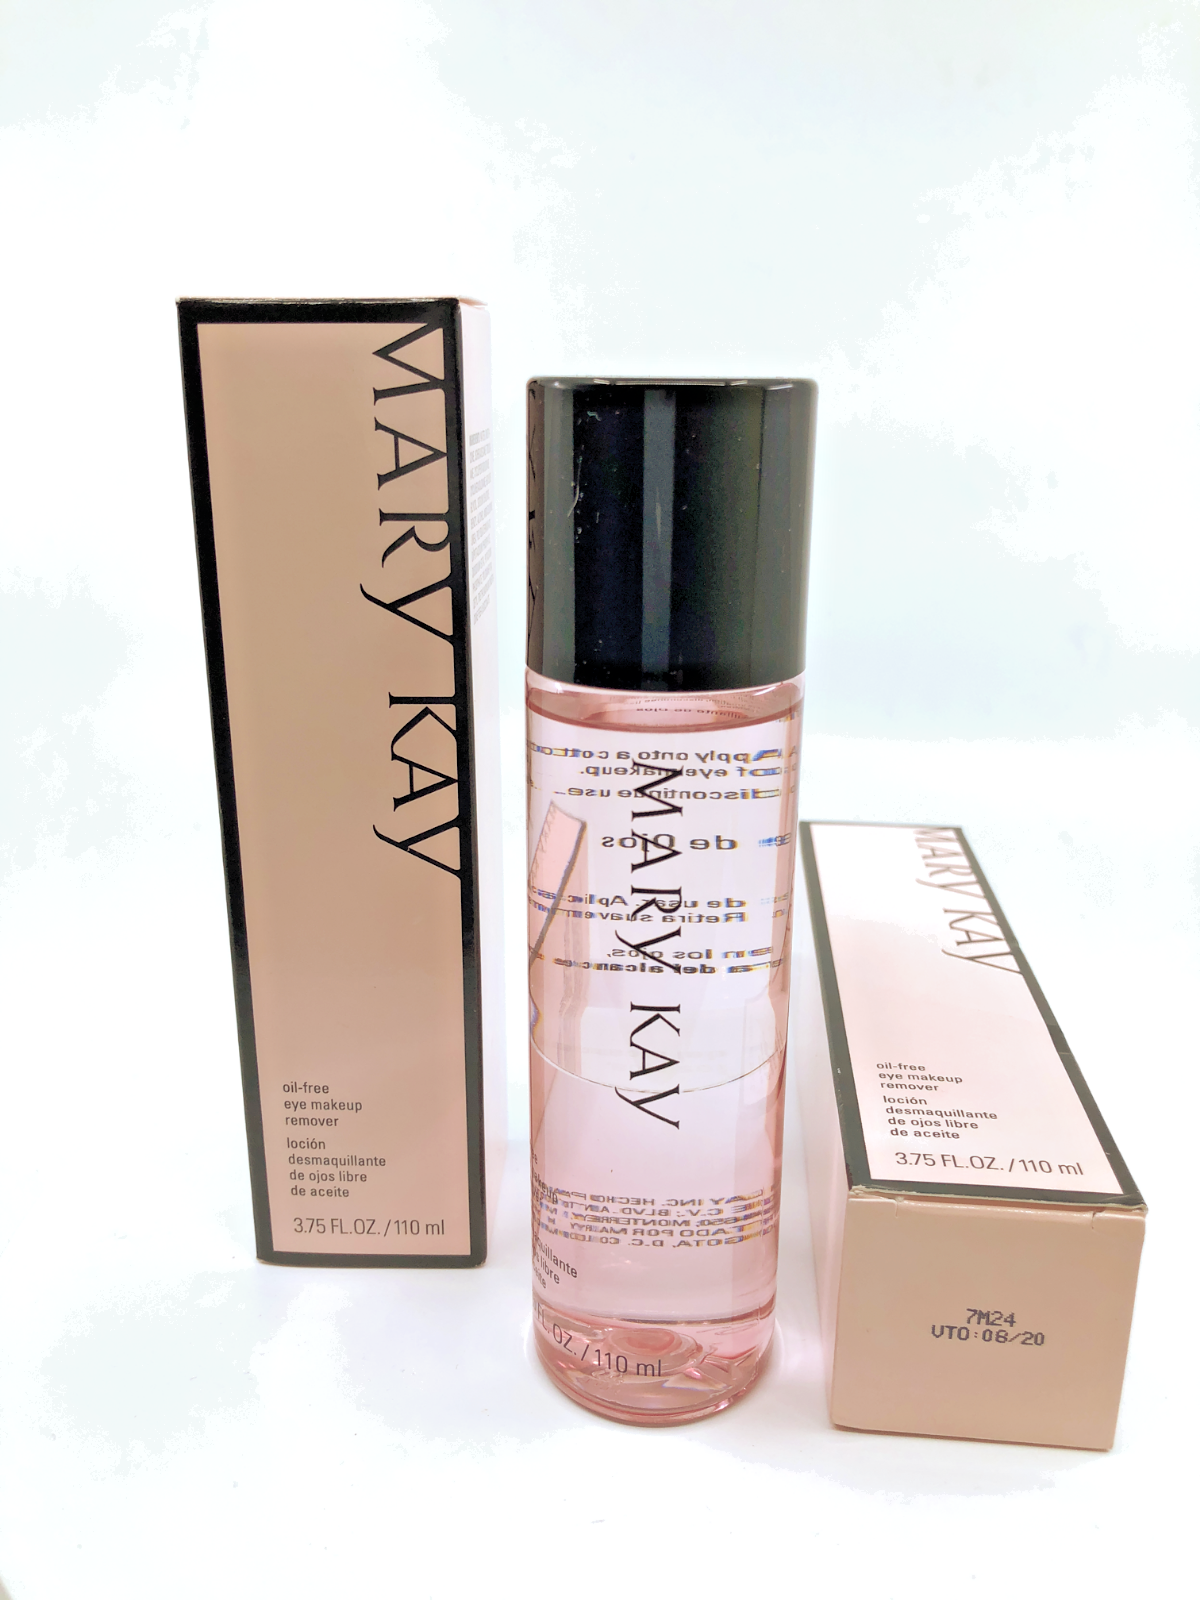 Mary Kay Oil-Free Eye Makeup Remover 3.75 fl. oz. FREE SHIPP